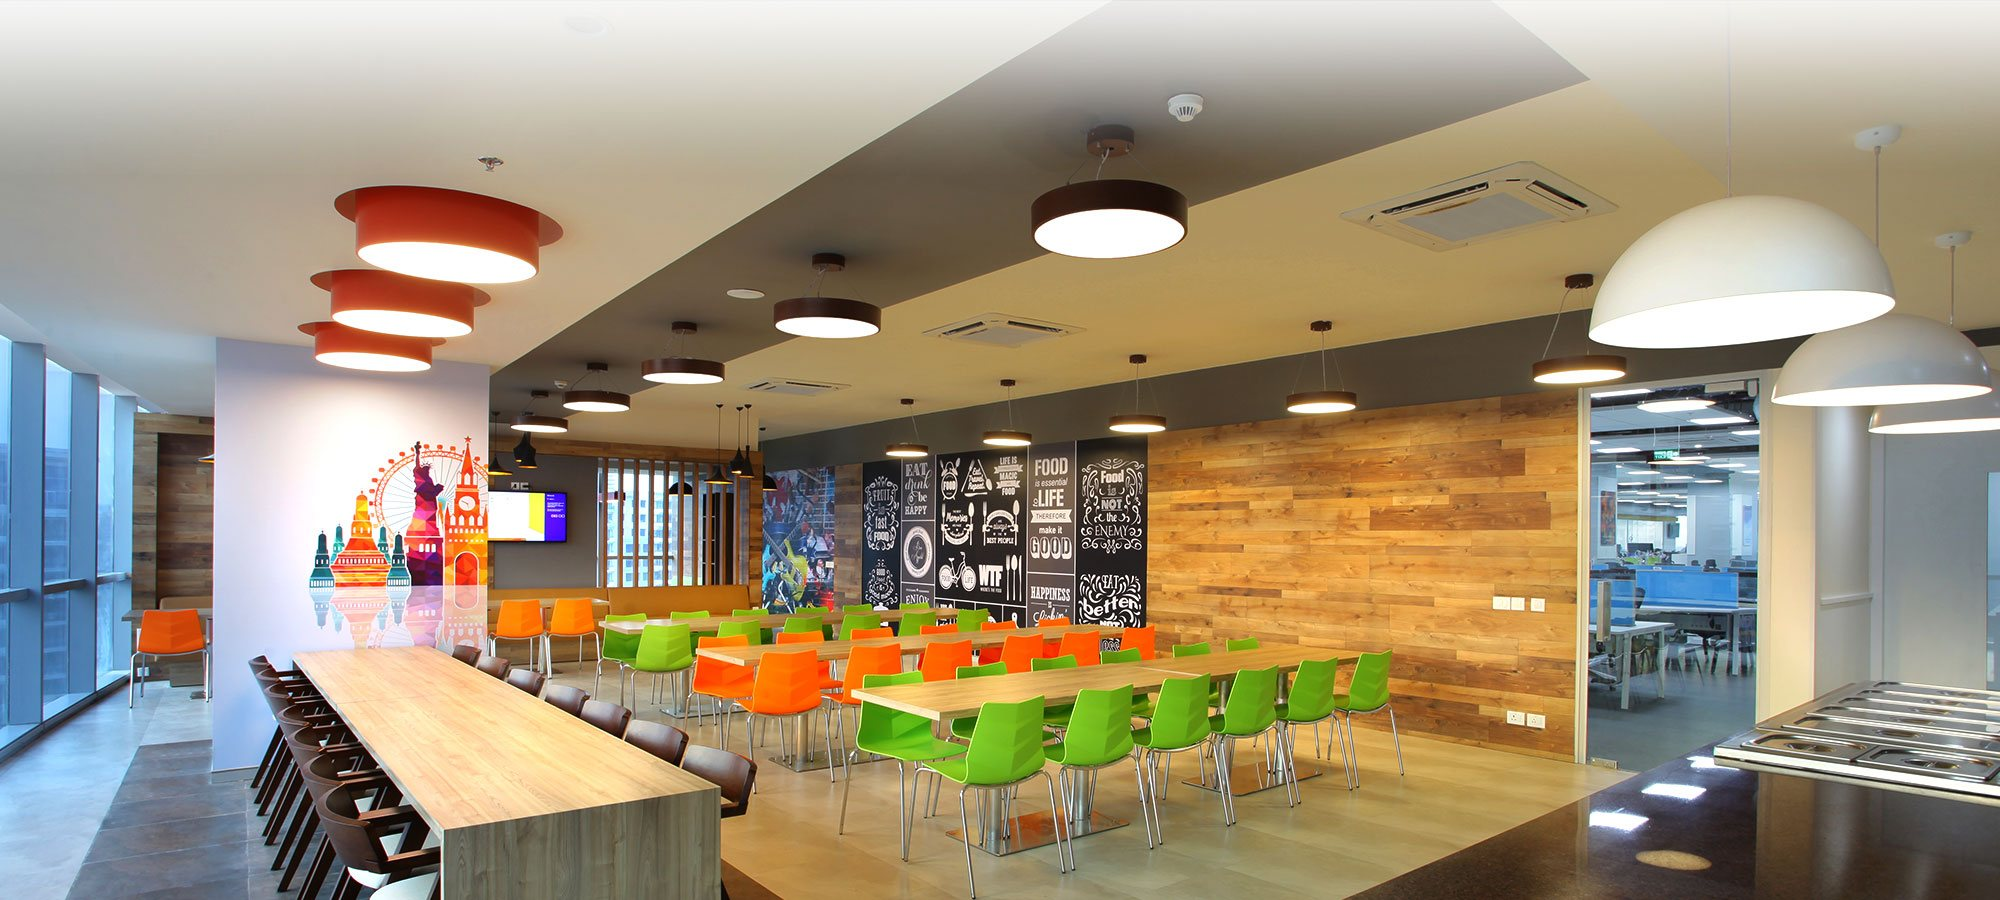 Office Interior Design Corporate Office Interior Designers In Delhi Office In